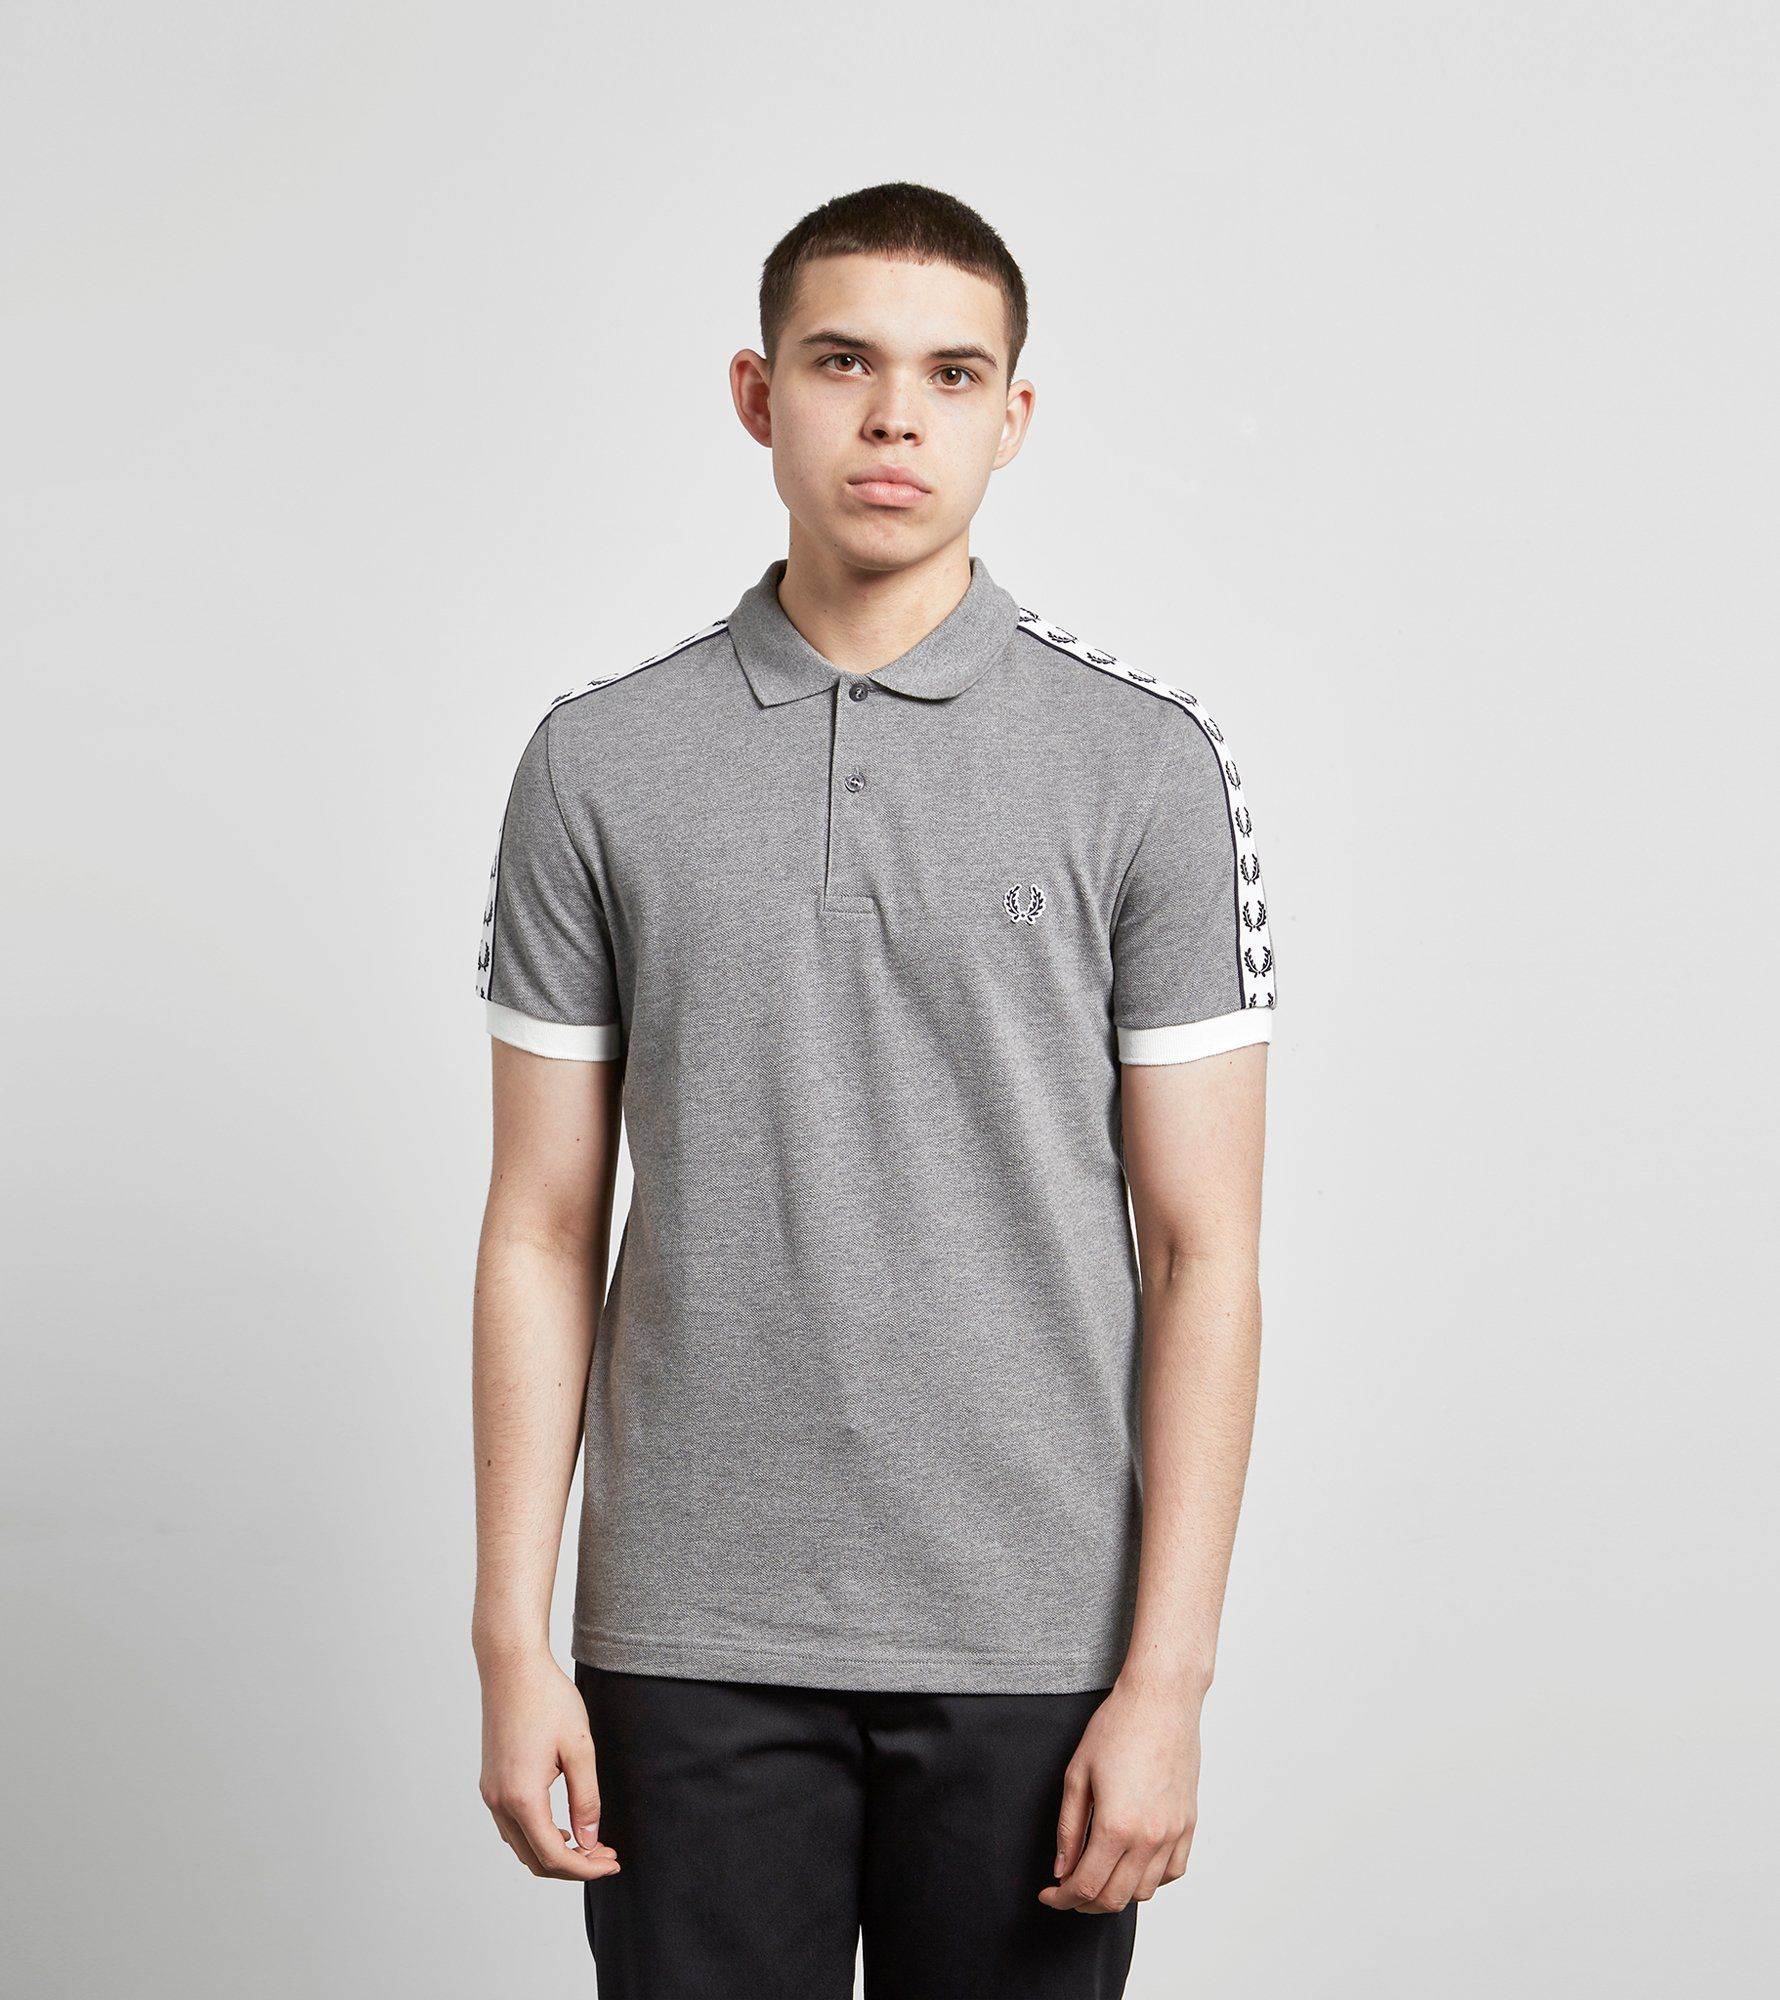 b3d1623b1 Fred Perry Taped Polo T Shirt White